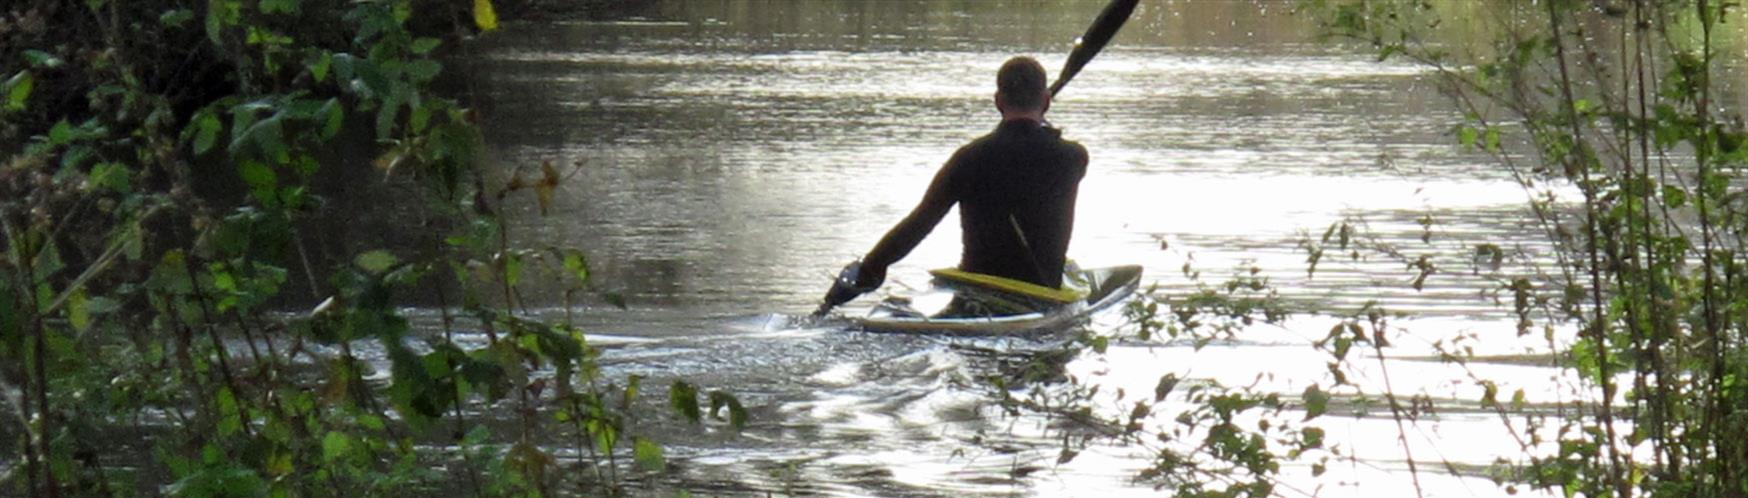 Canoeing down the River Wey